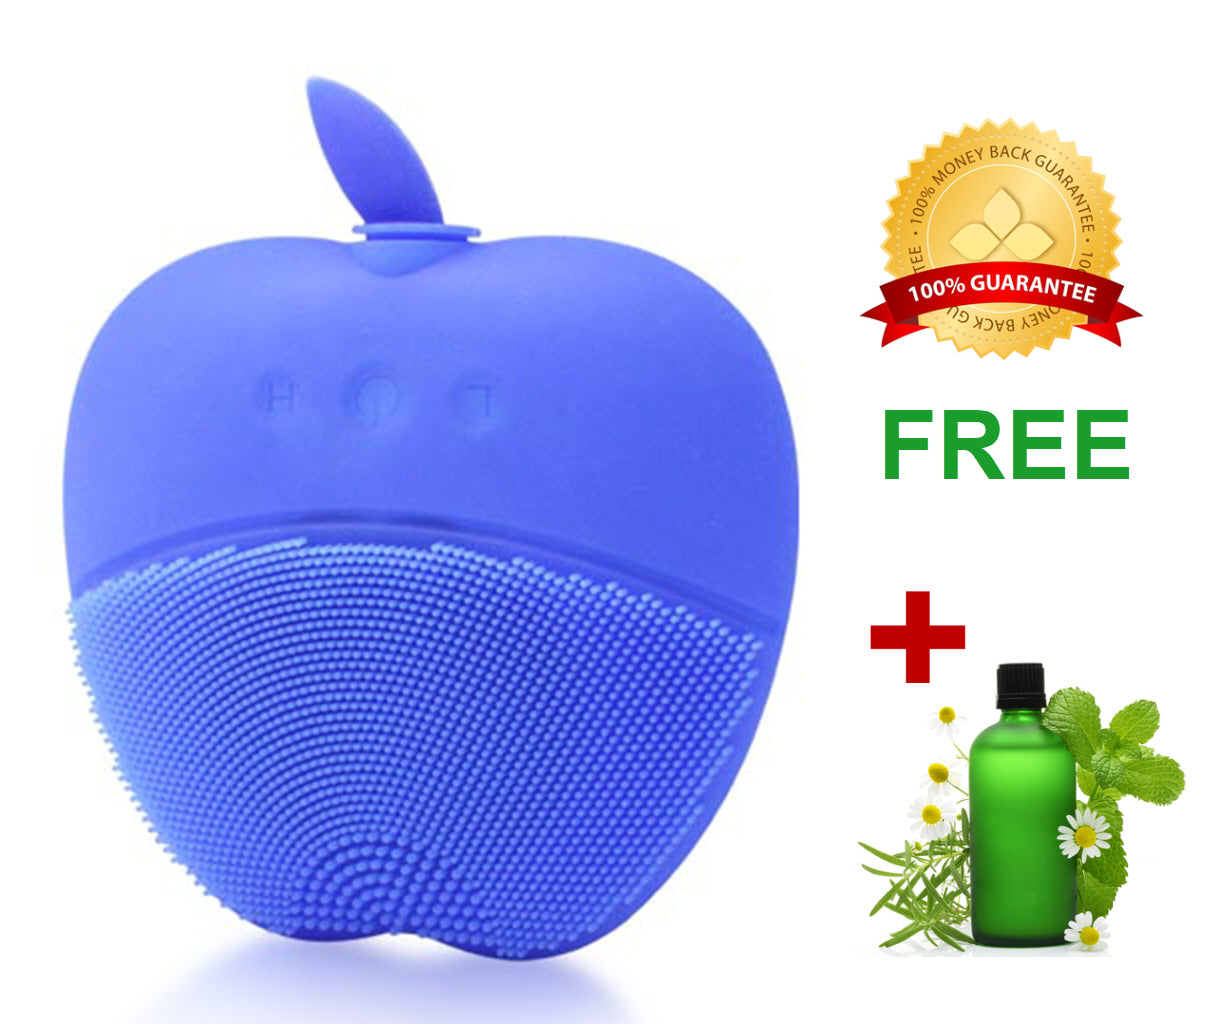 Sonic Peach Facial Cleansing Brush for Healthy Skin - Blue